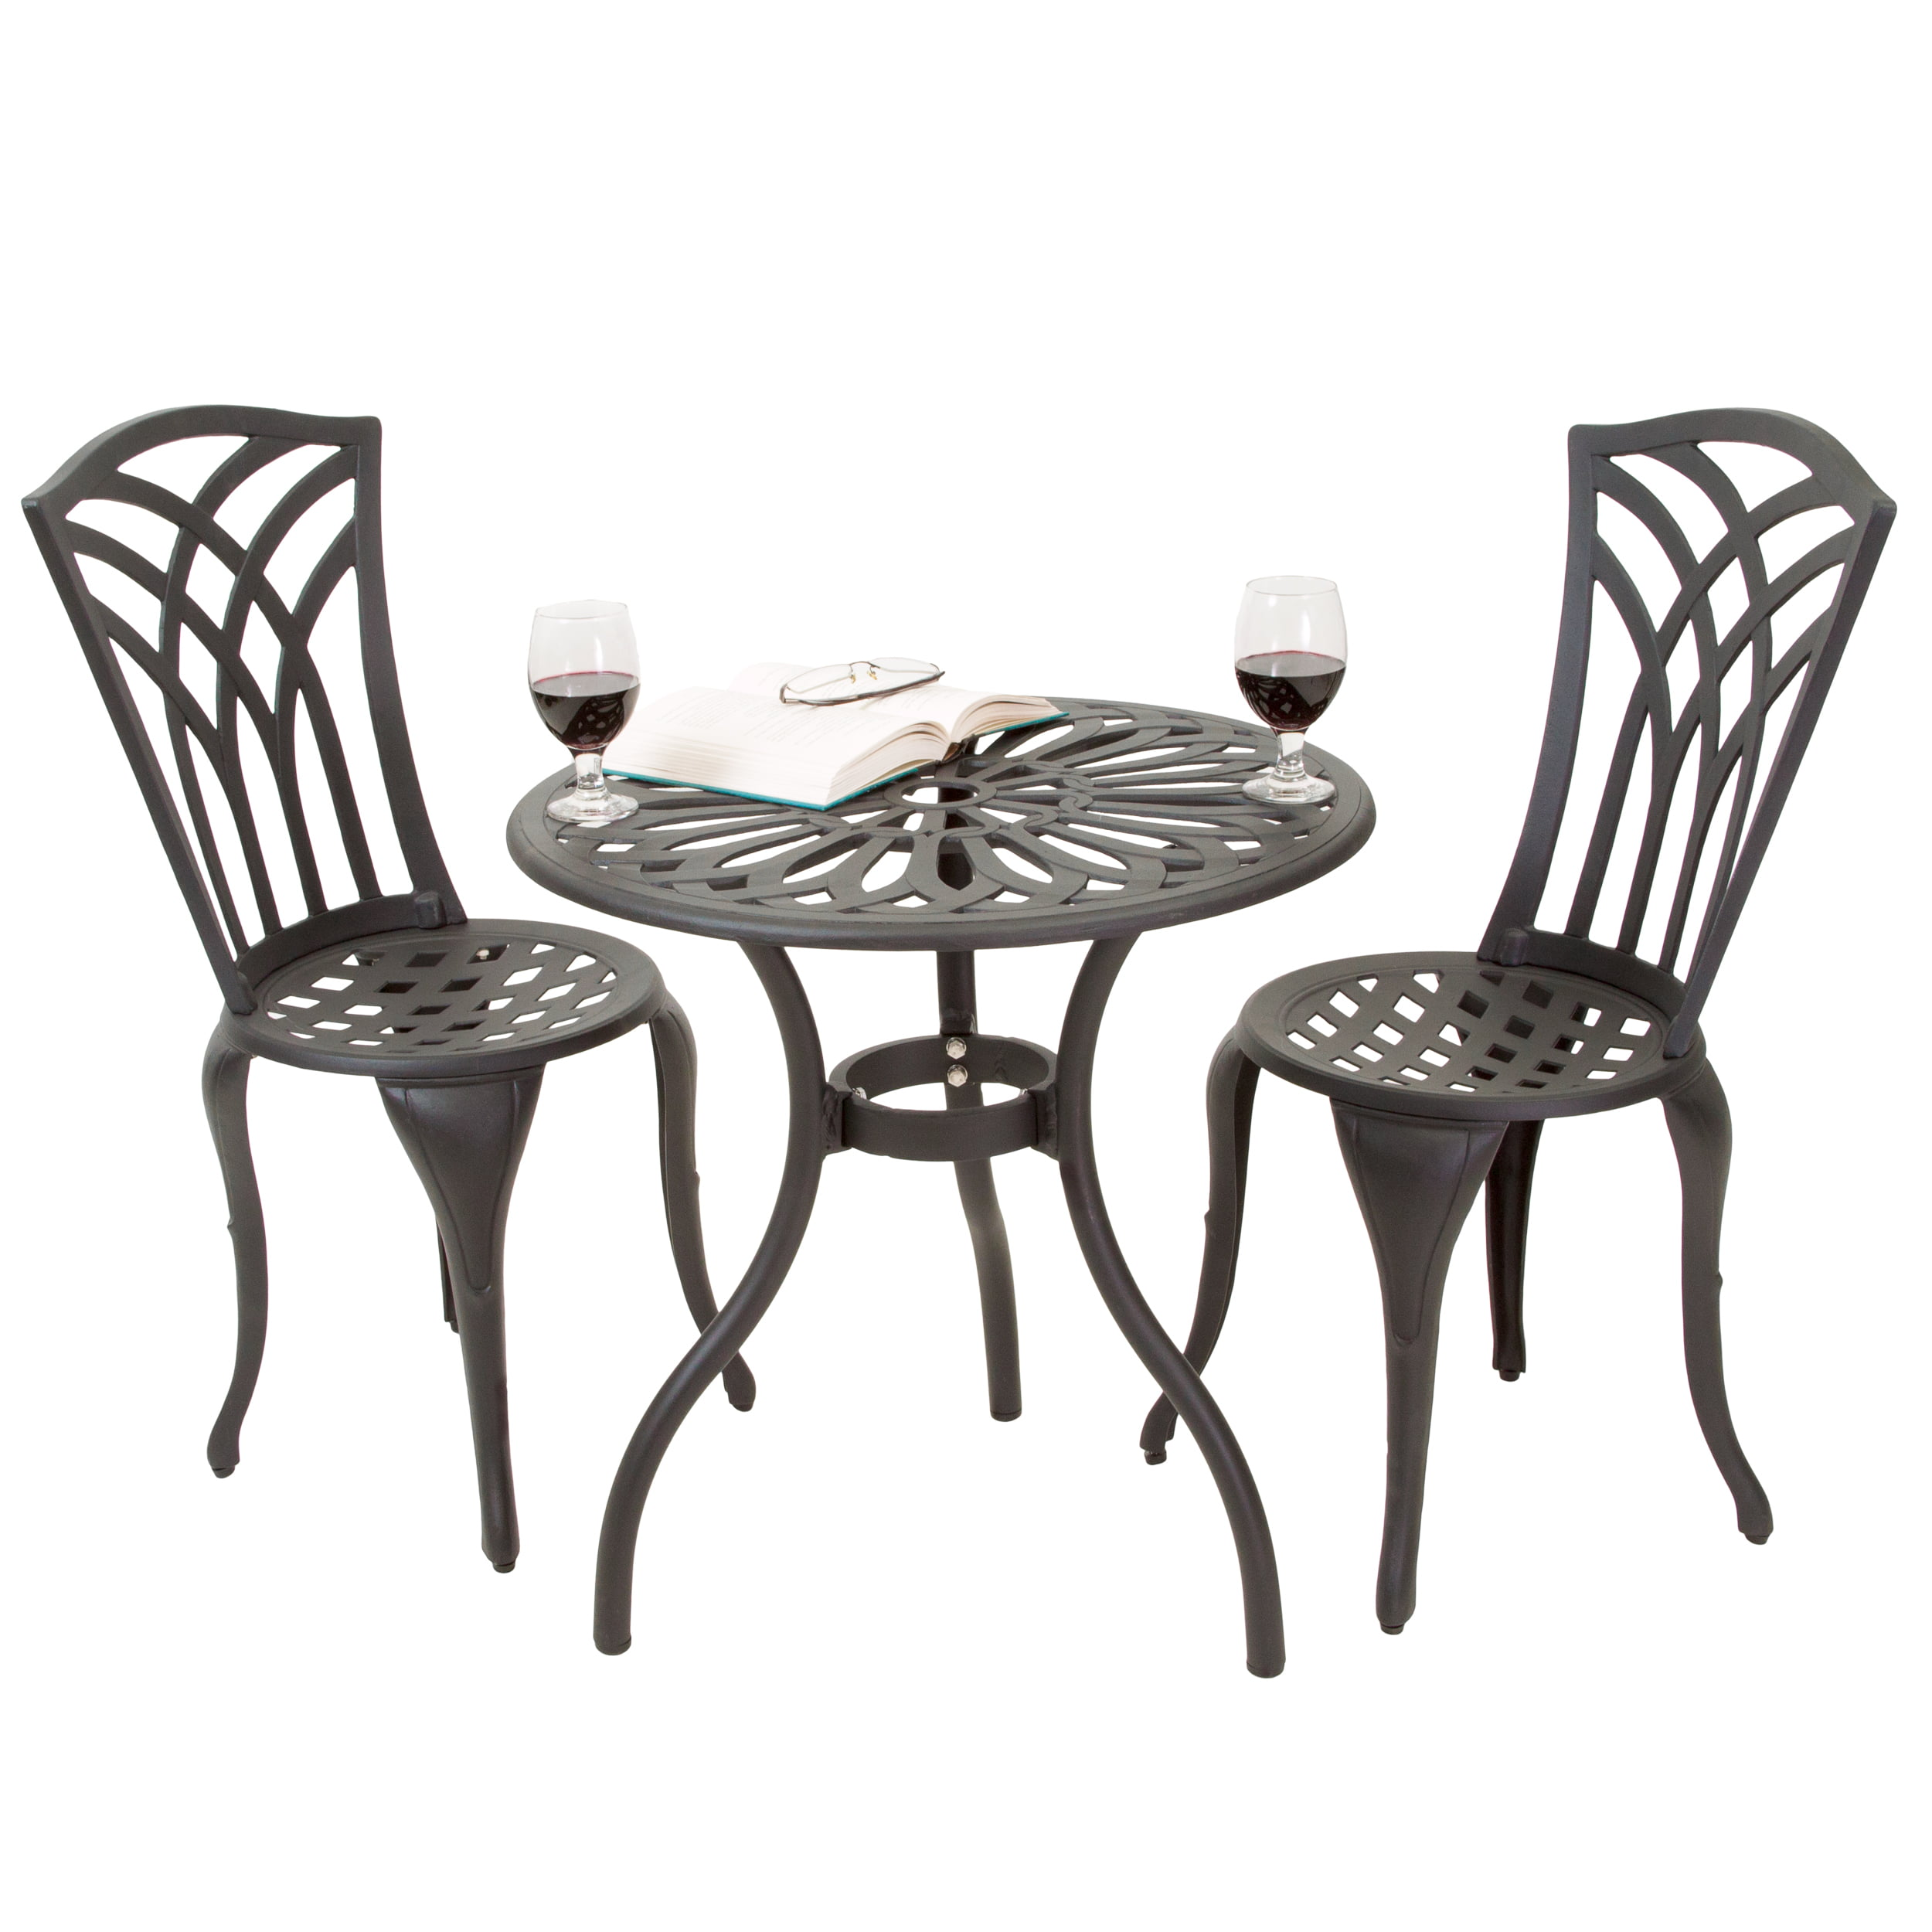 3 Piece Cast Aluminum Outdoor Bistro Set by GDF Studio